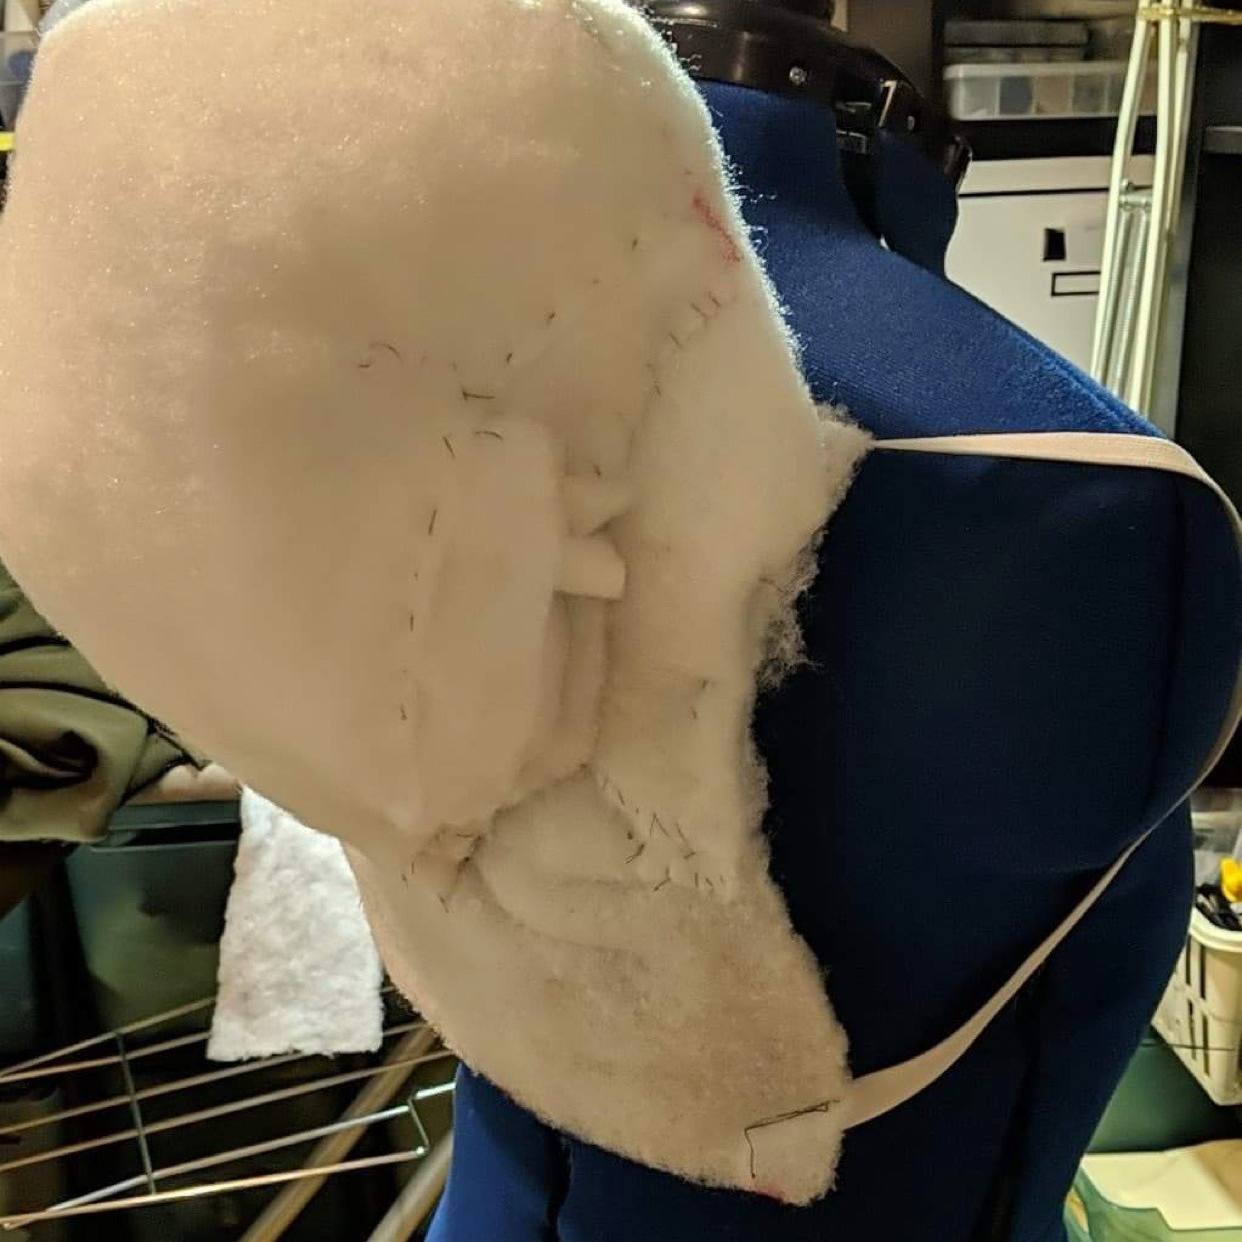 Making the hump for the Hunchback of Notre Dame costume.